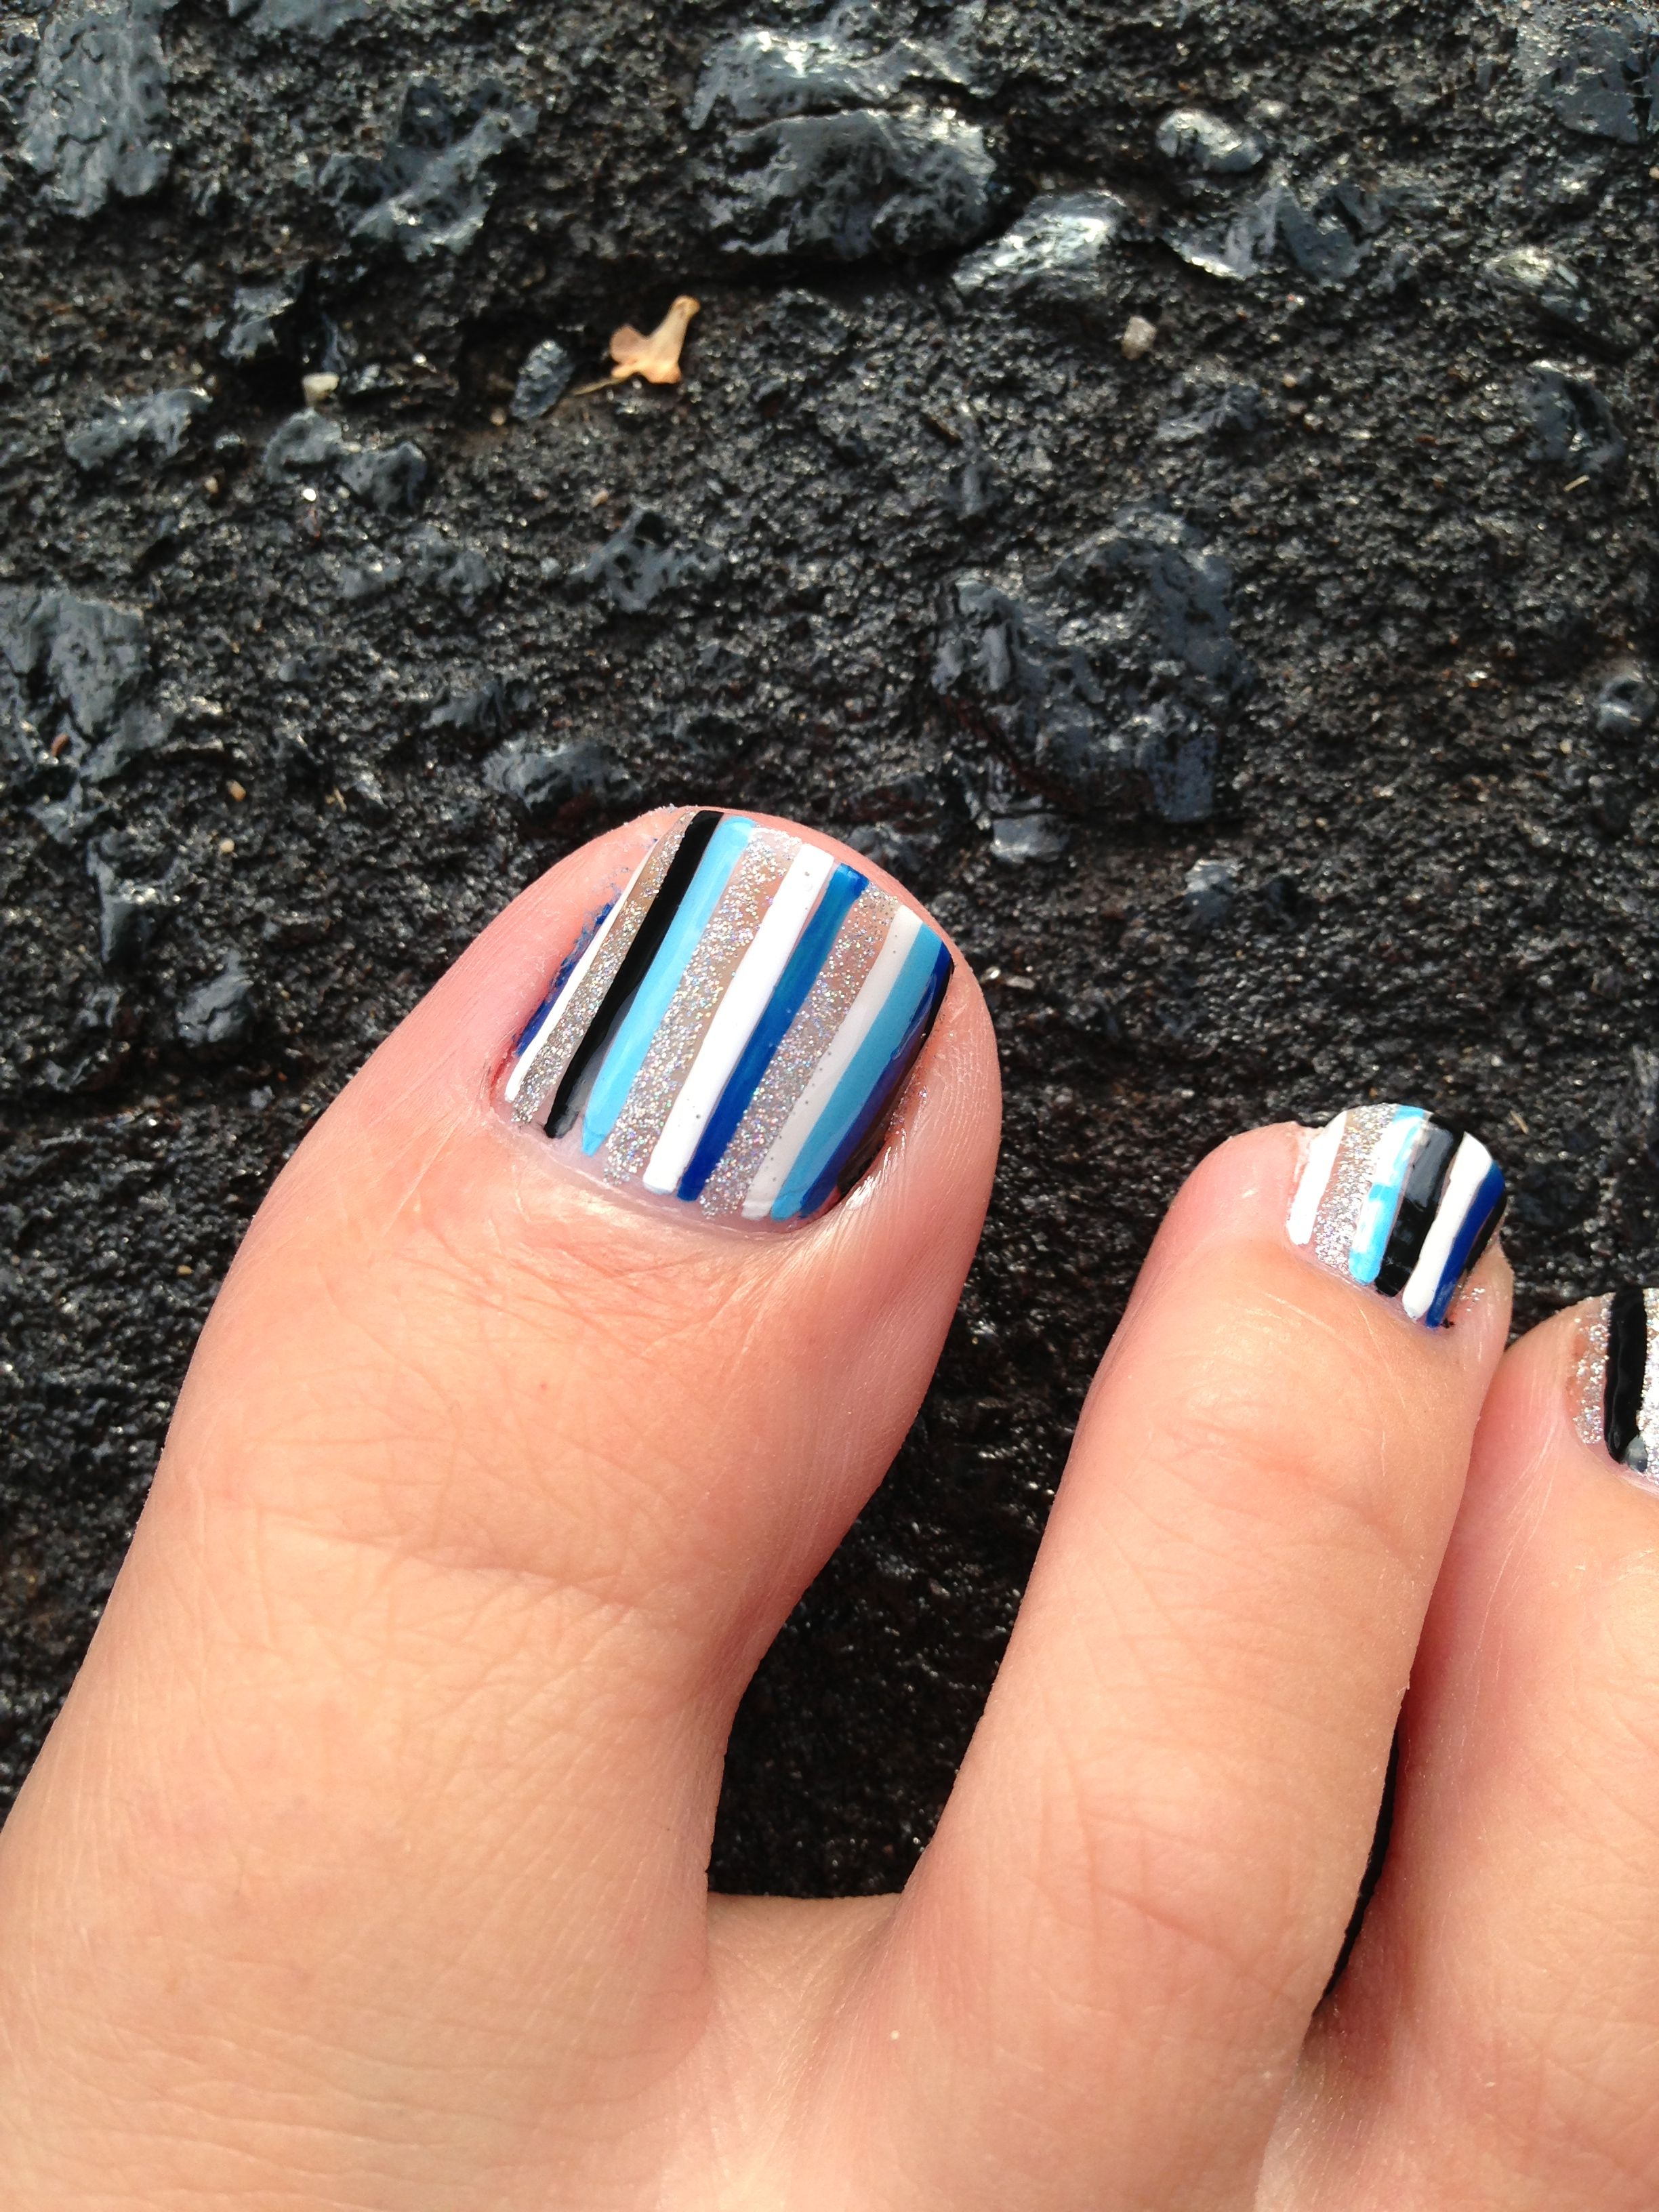 My striped toes! 5 colours